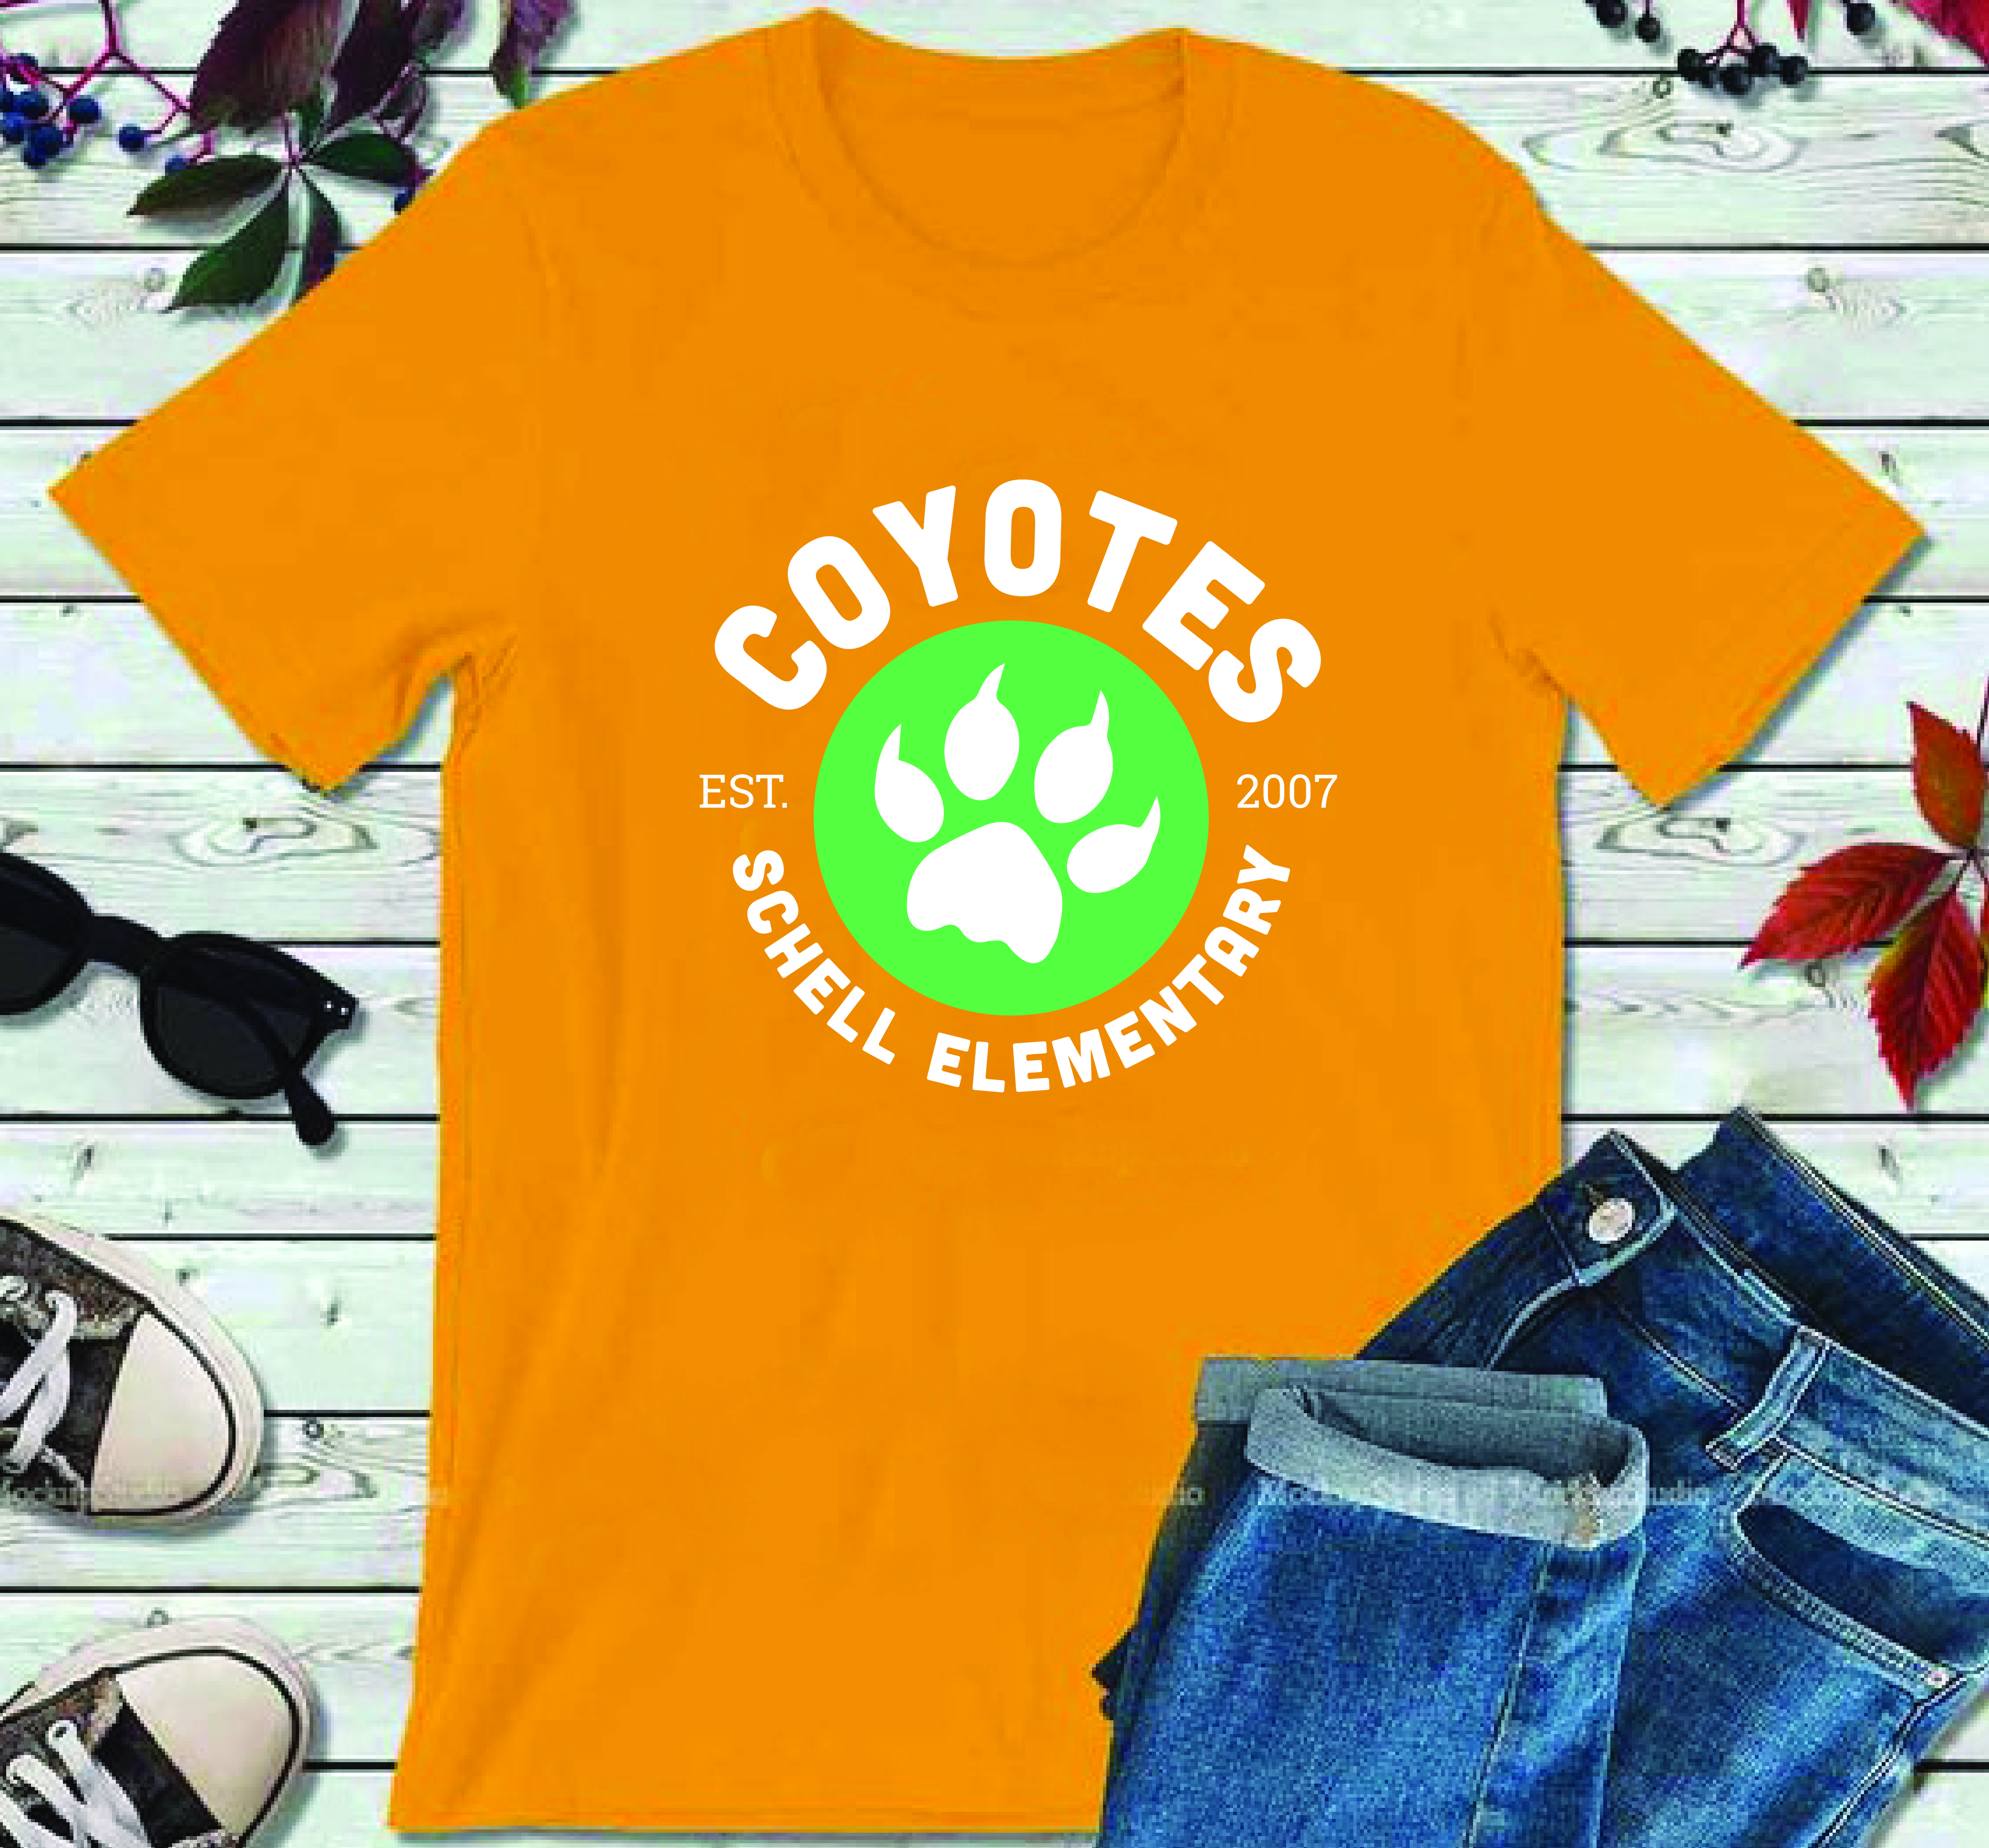 Pre-Order Gold Coyotes T-Shirt